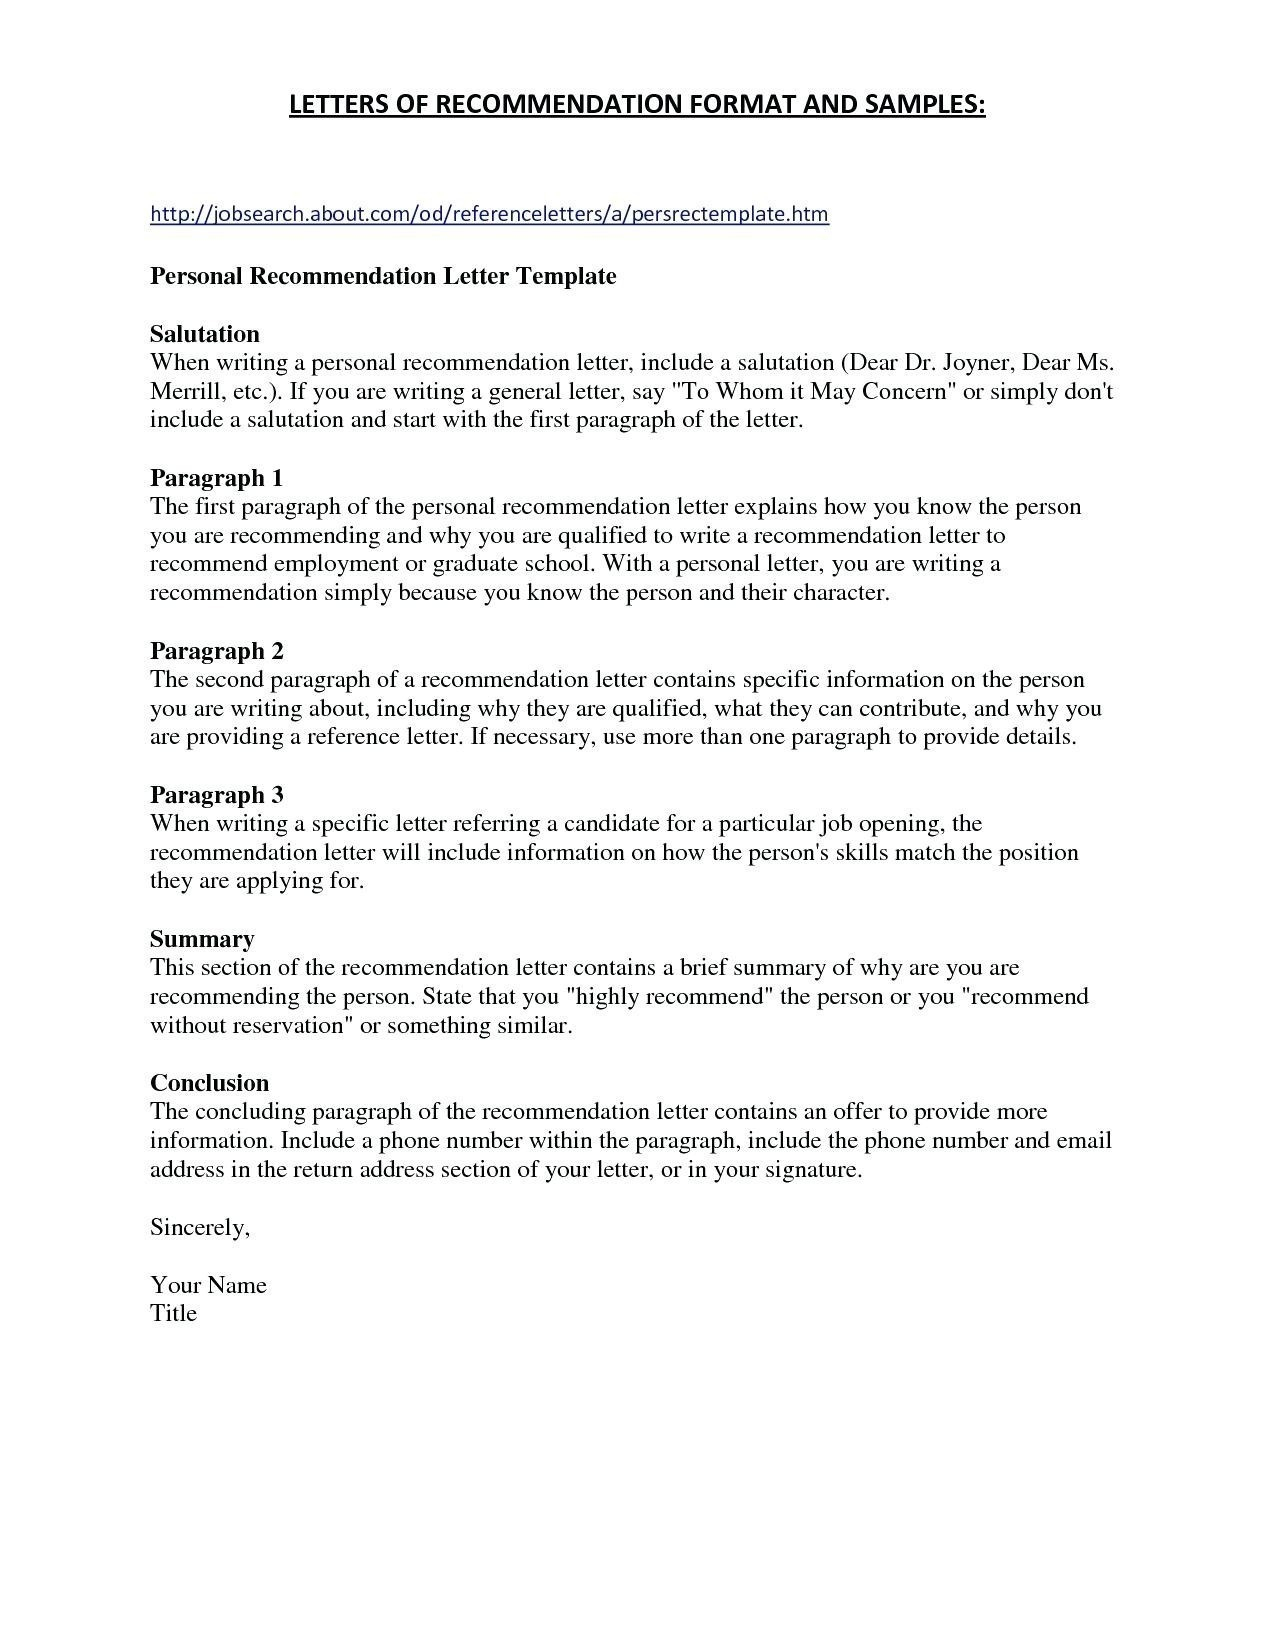 Personal Letter Of Recommendation for A Friend Template - Inspirational Re Mendation Letter for A Friend Template